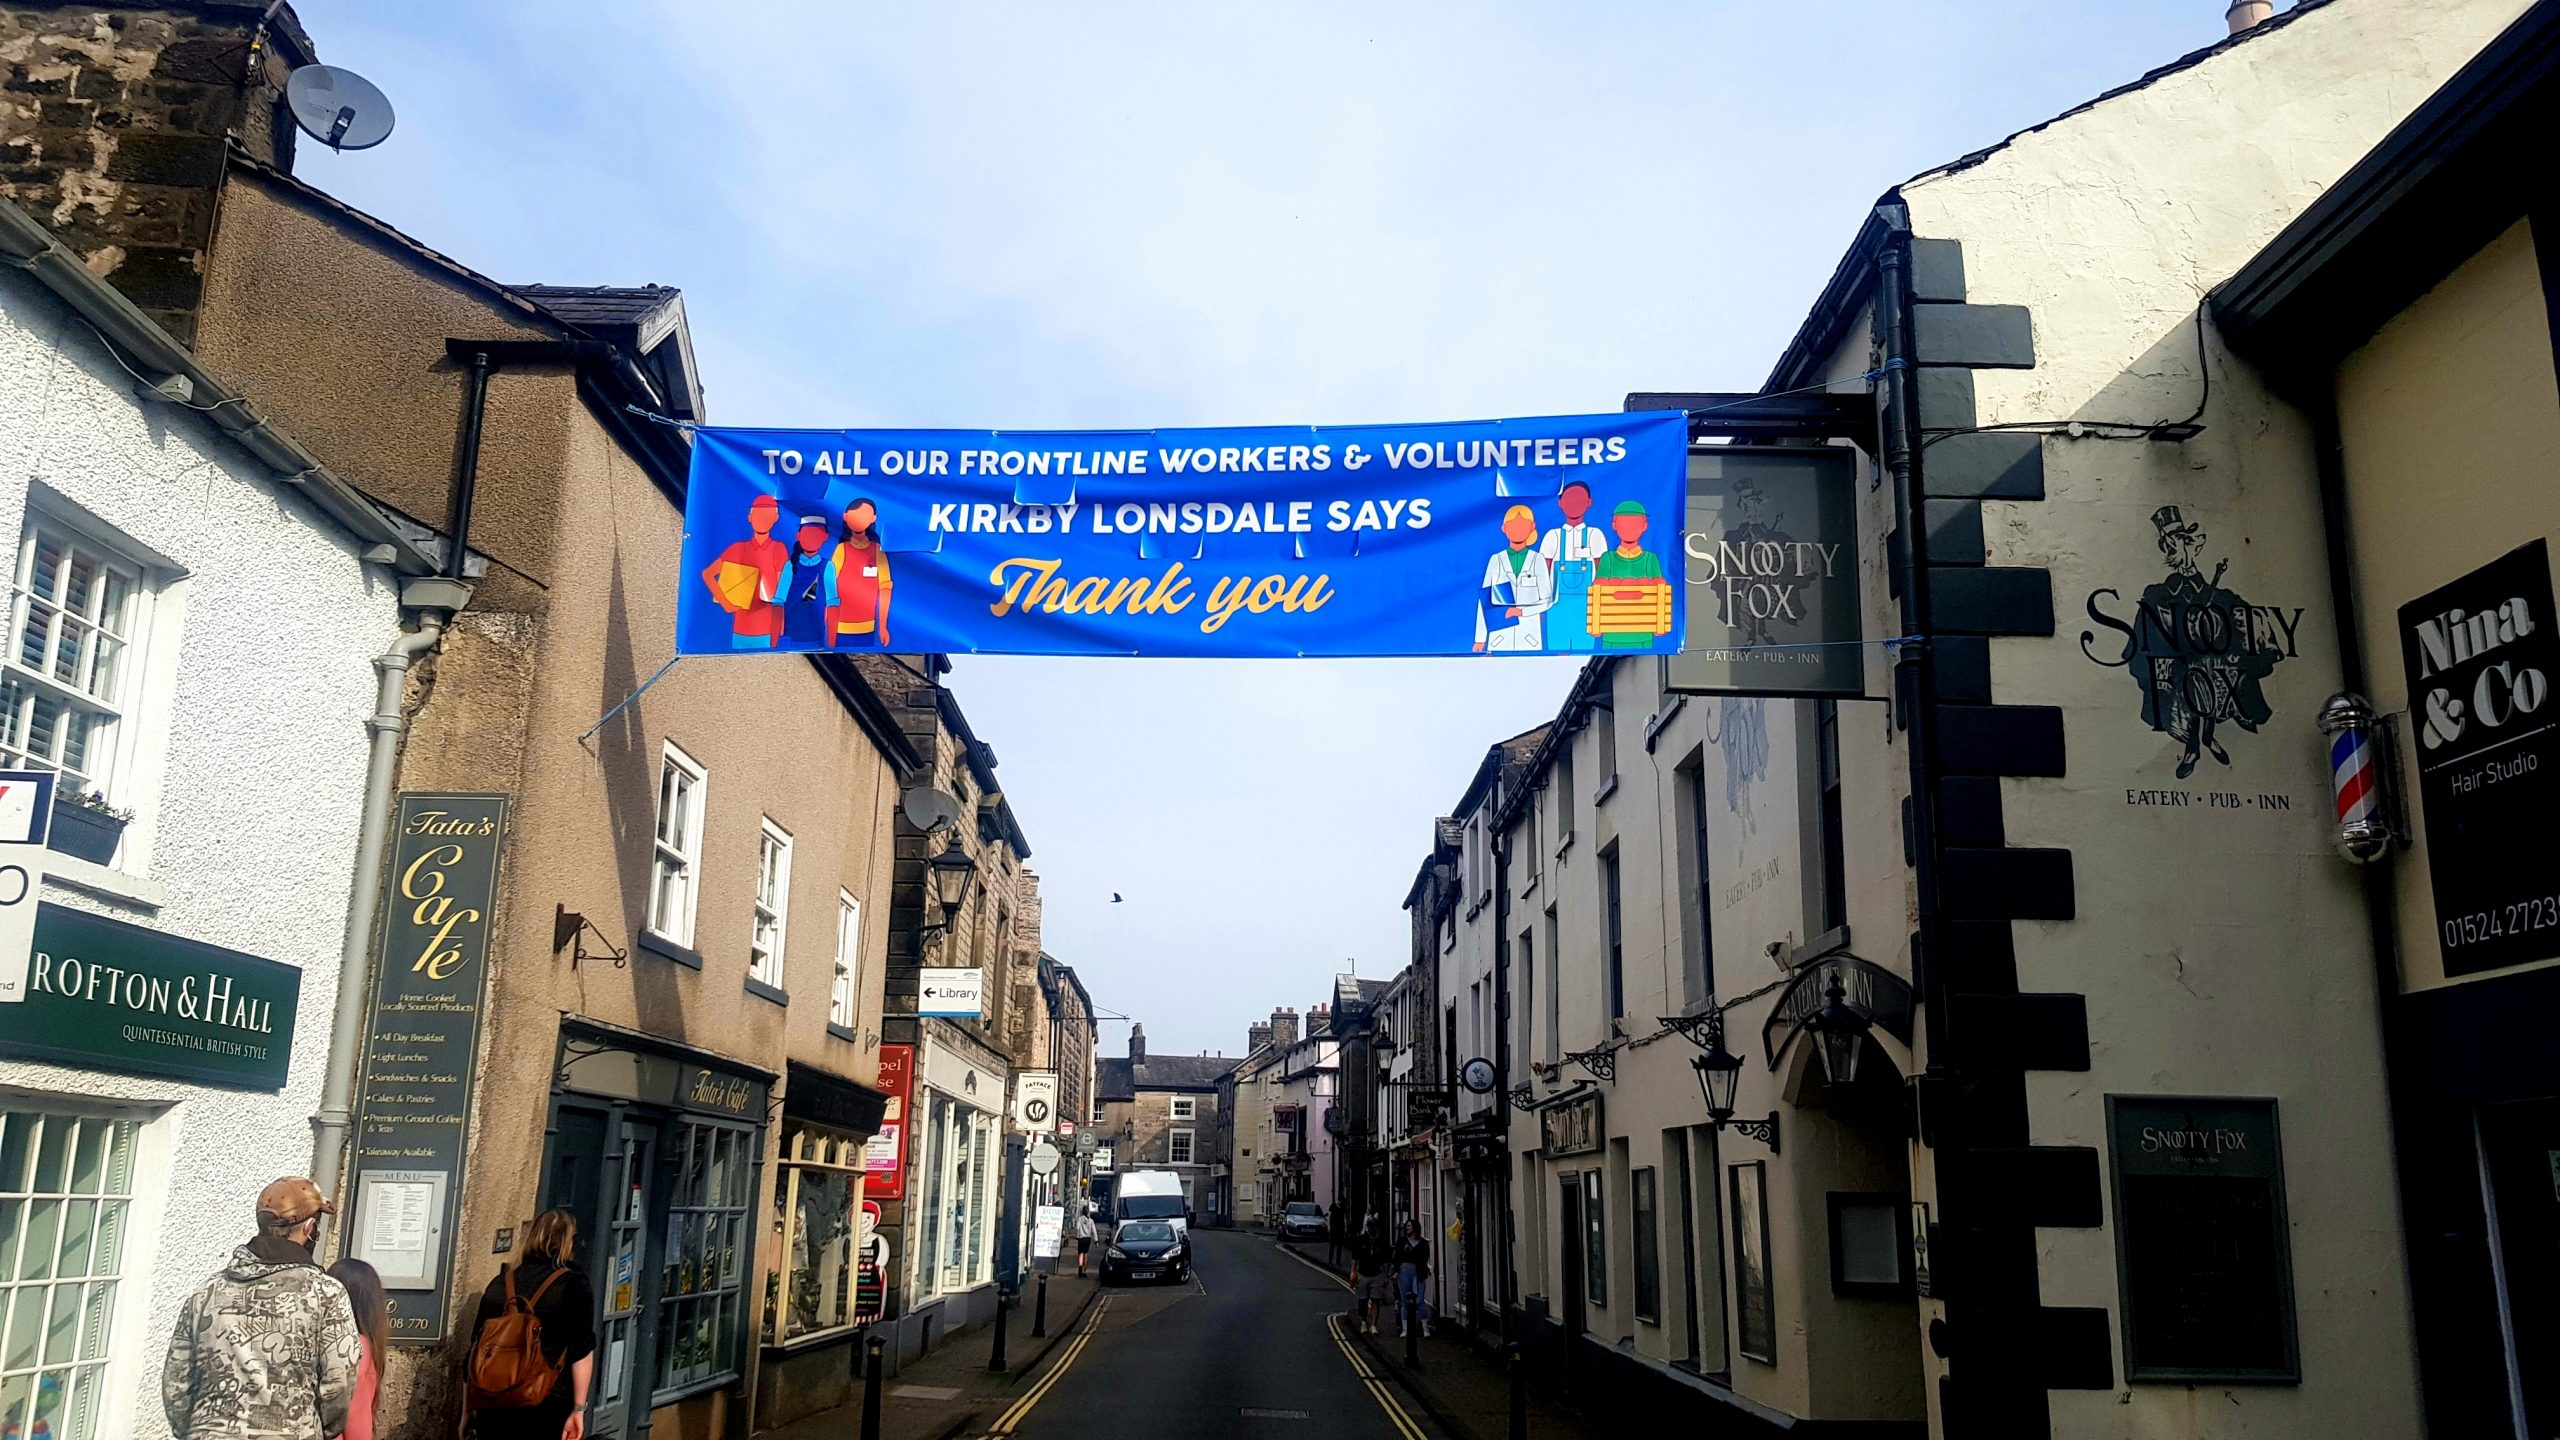 Thank you banner across Main Street in Kirkby Lonsdale